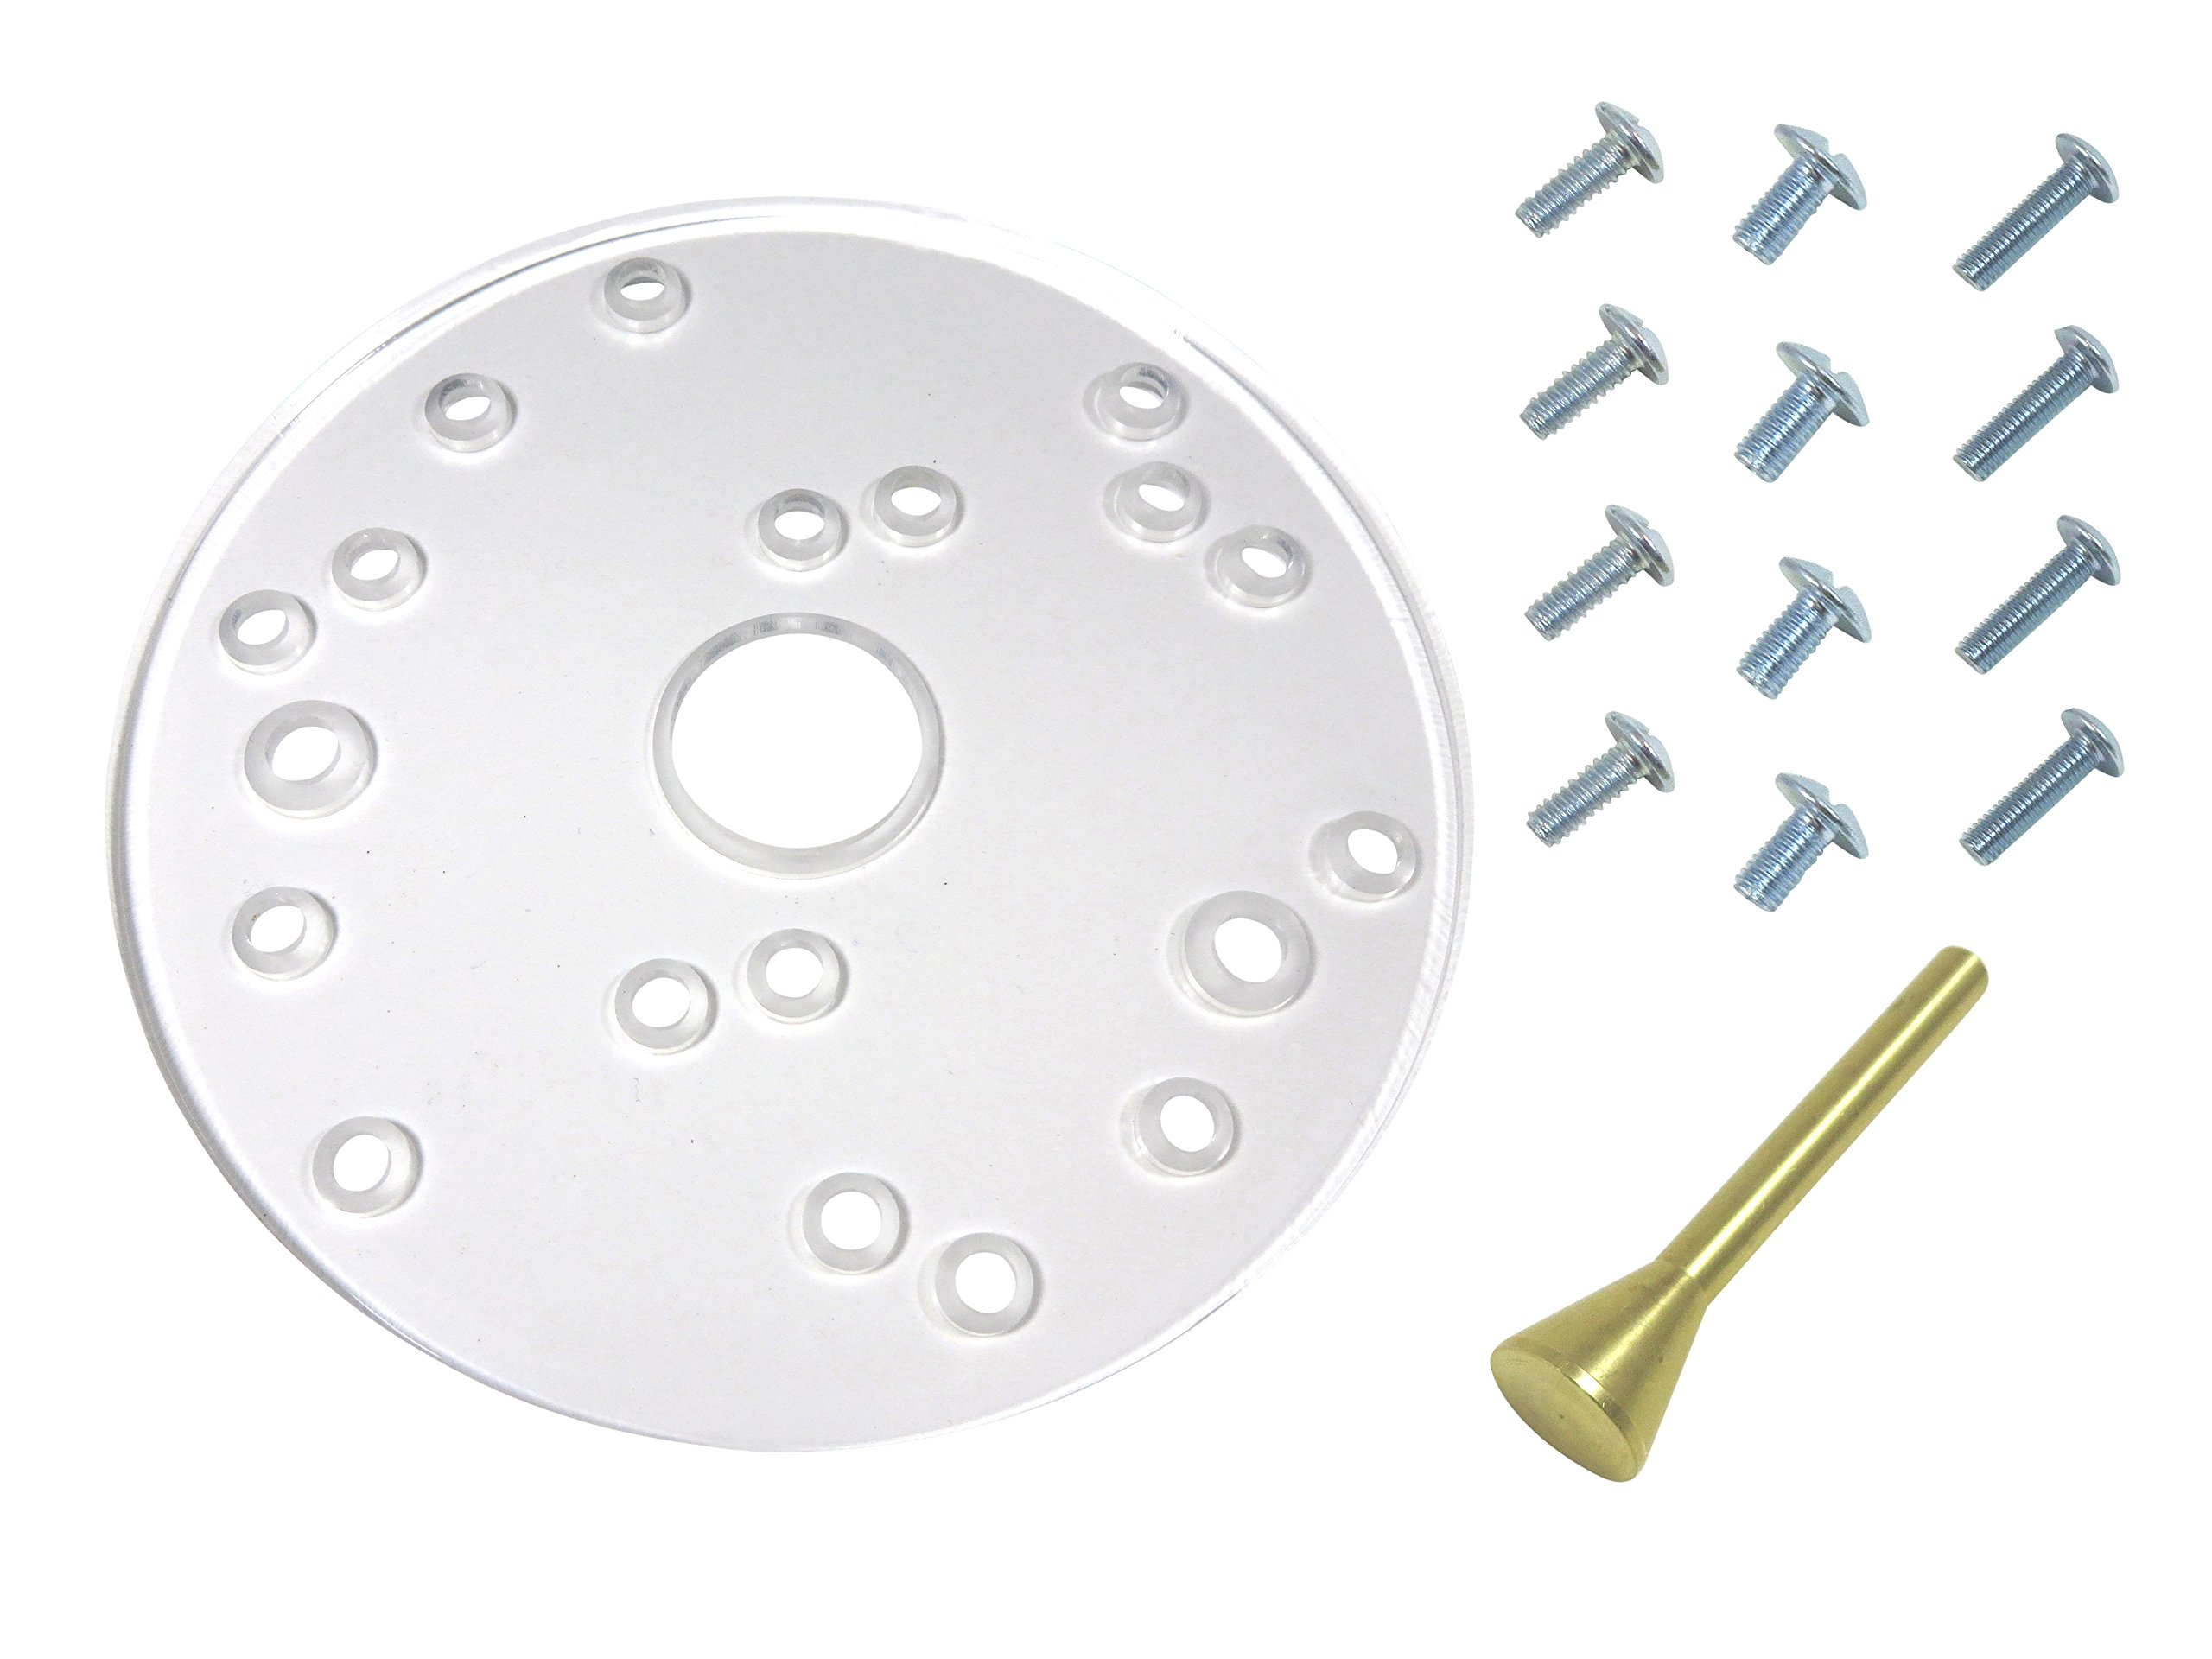 Taytools 300005 Universal Router Base Plate, 6-1/2 Inch Diameter, 5/16 Inch Thick, Fits most 1-2 HP Porter Cable, Ryobi, Bosch, Makita, Sears, Fein, Milwaukee, Freud, Hitachi, Elu and Dewalt Routers by Taytools